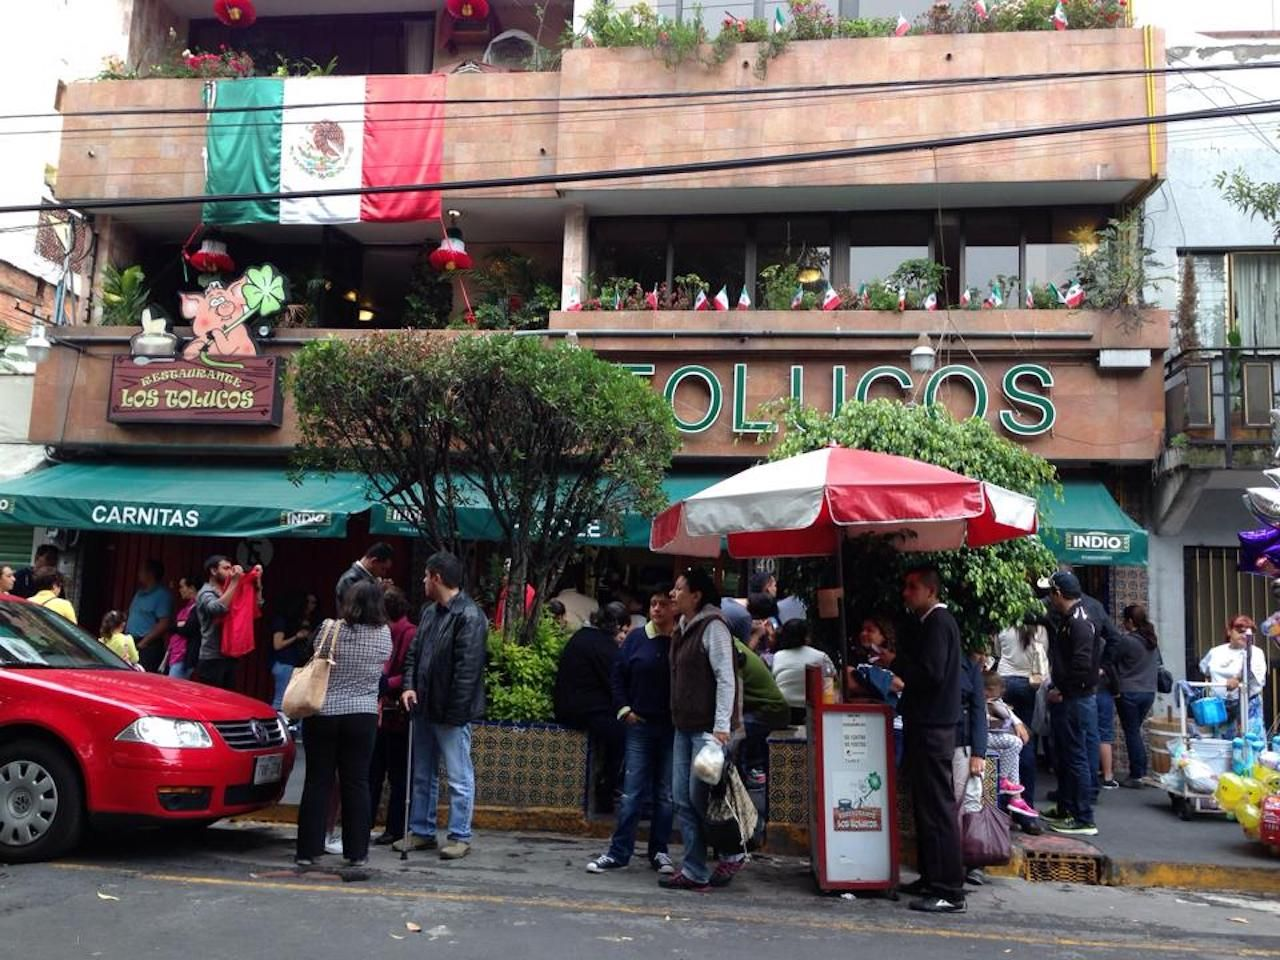 People standing outside Los Tolucos in Mexico City